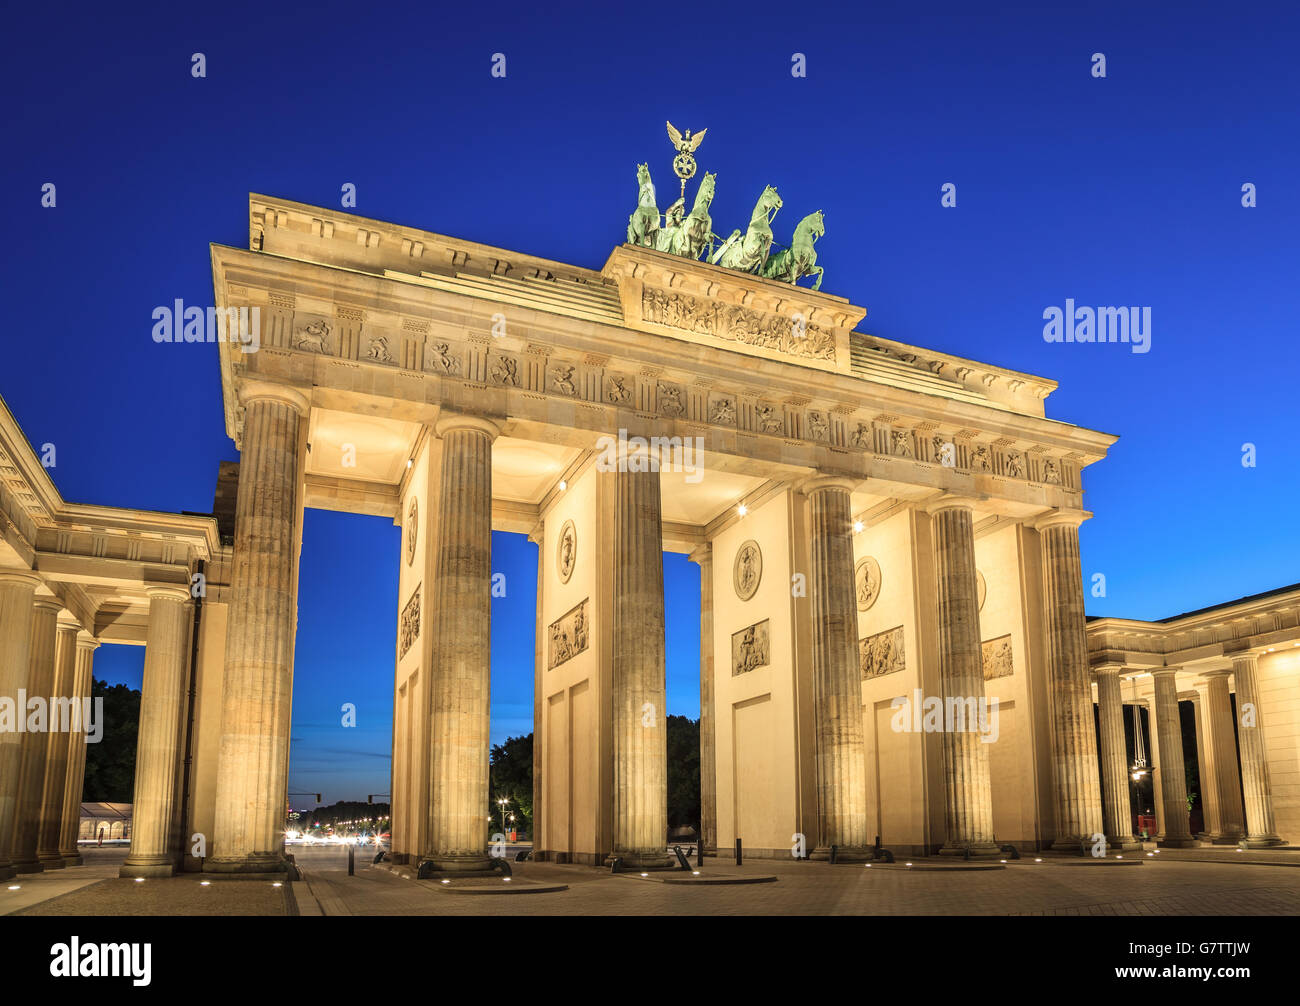 Porte de Brandebourg, Berlin, Allemagne Photo Stock